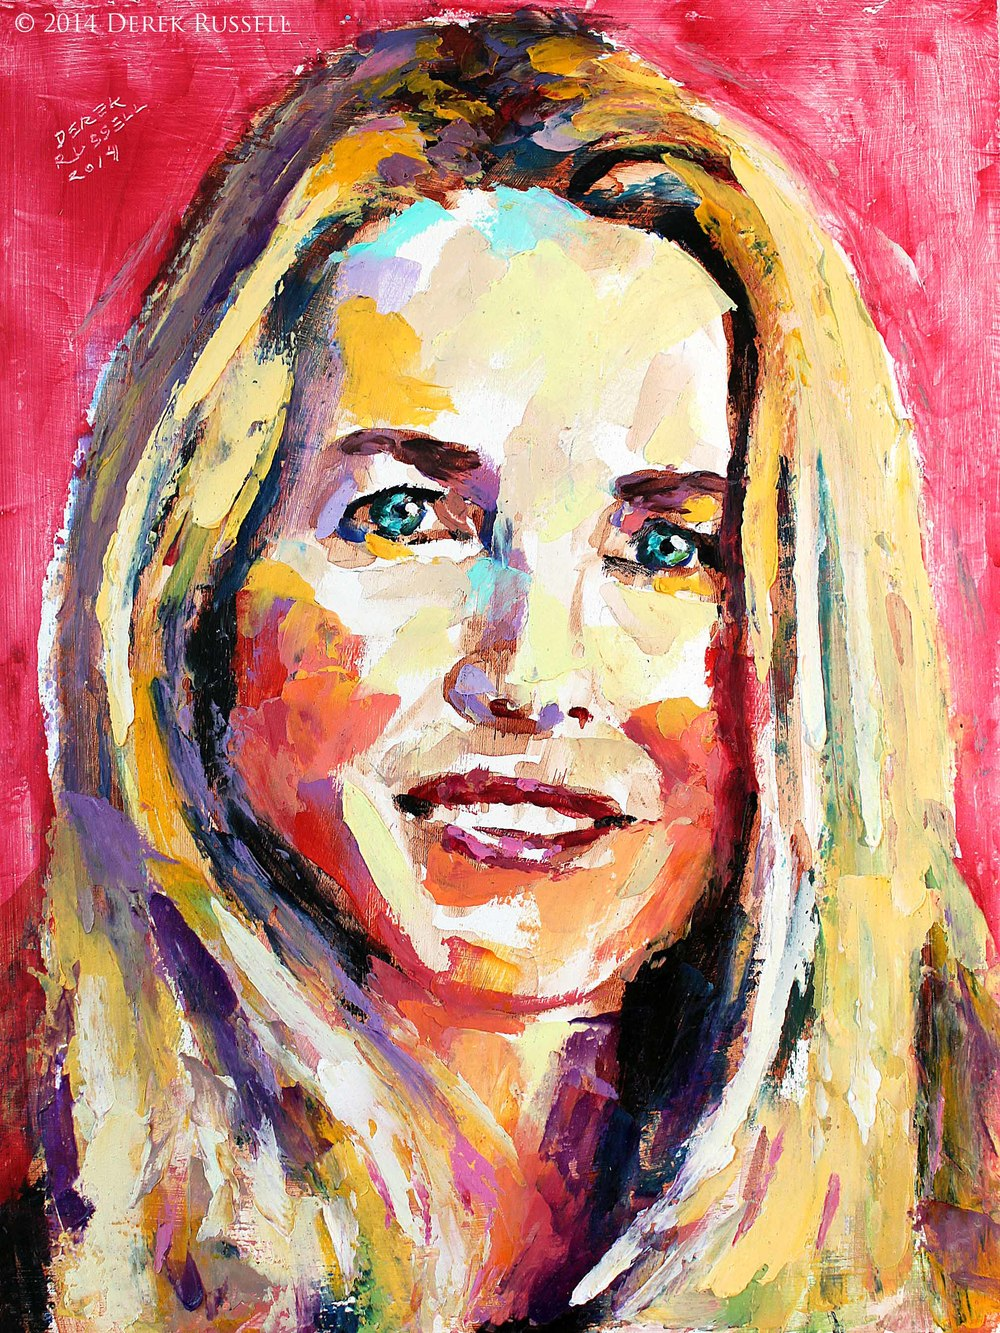 Laurene Powell Jobs Original Oil Portrait Painting by Artist Derek Russell 2014.jpg